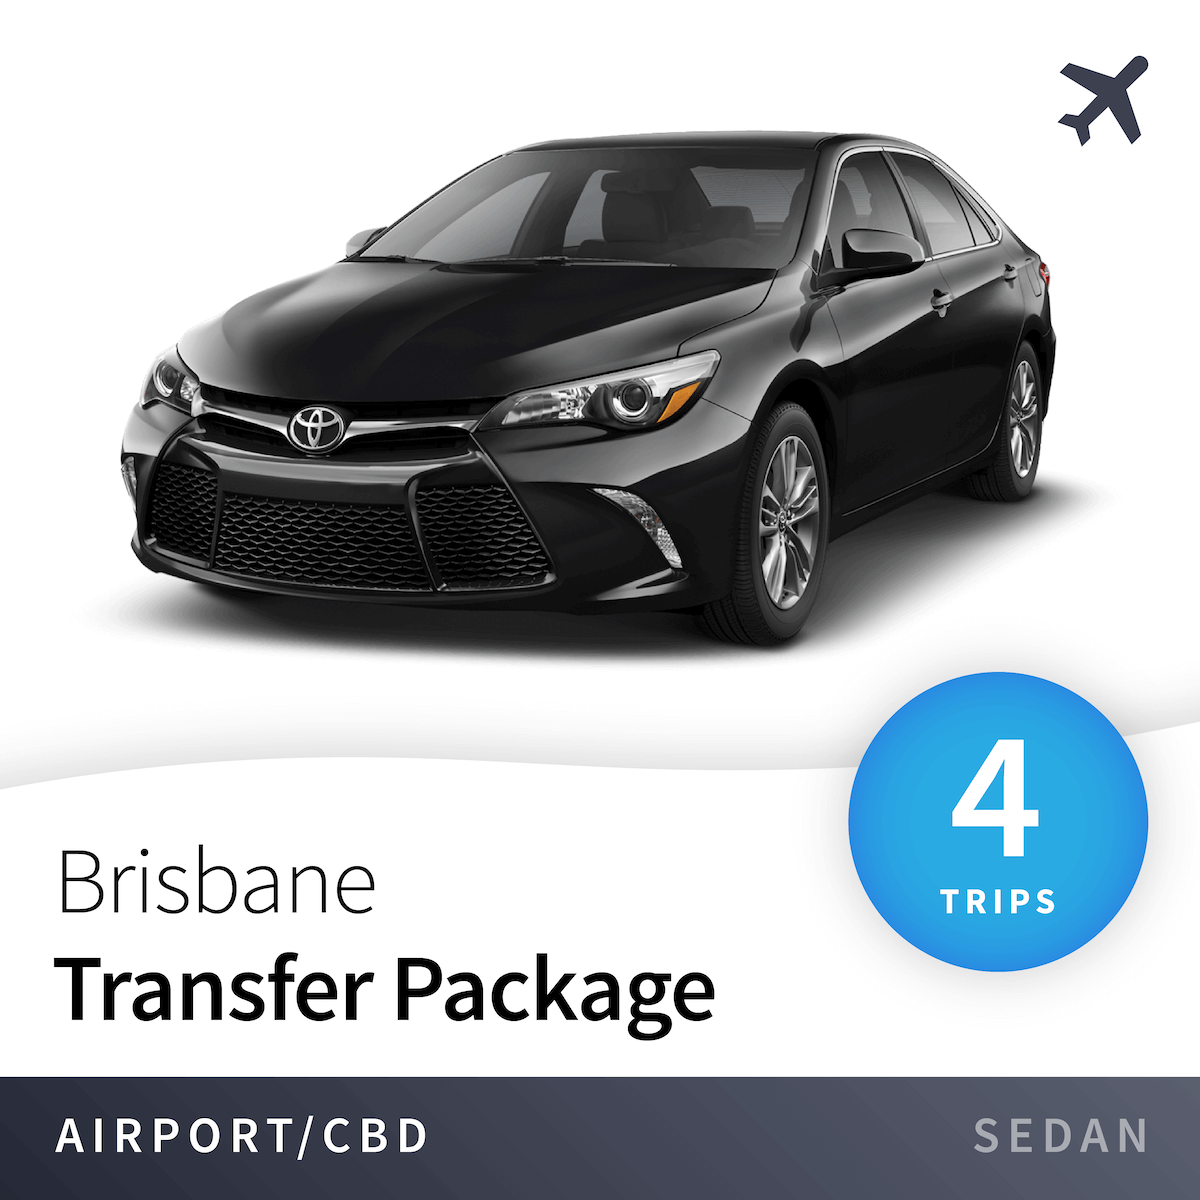 Brisbane Airport Transfer Package - Sedan (4 Trips) 8